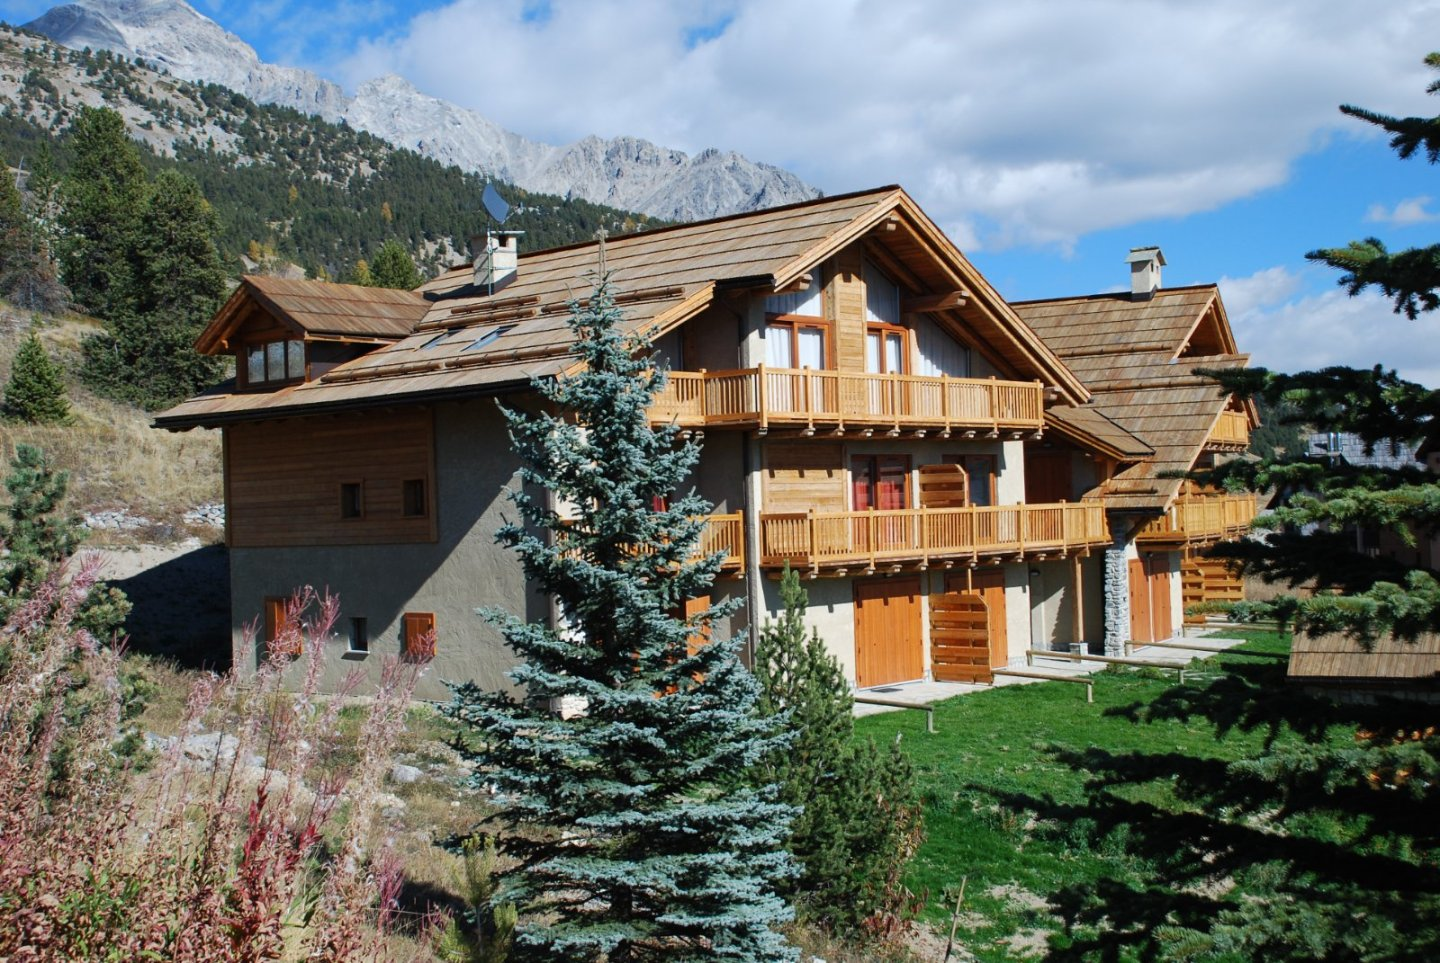 APARTMENT 2 ROOMS FOR SALE - MONTGENEVRE VILLAGE - 38 m2 - 225 000 €